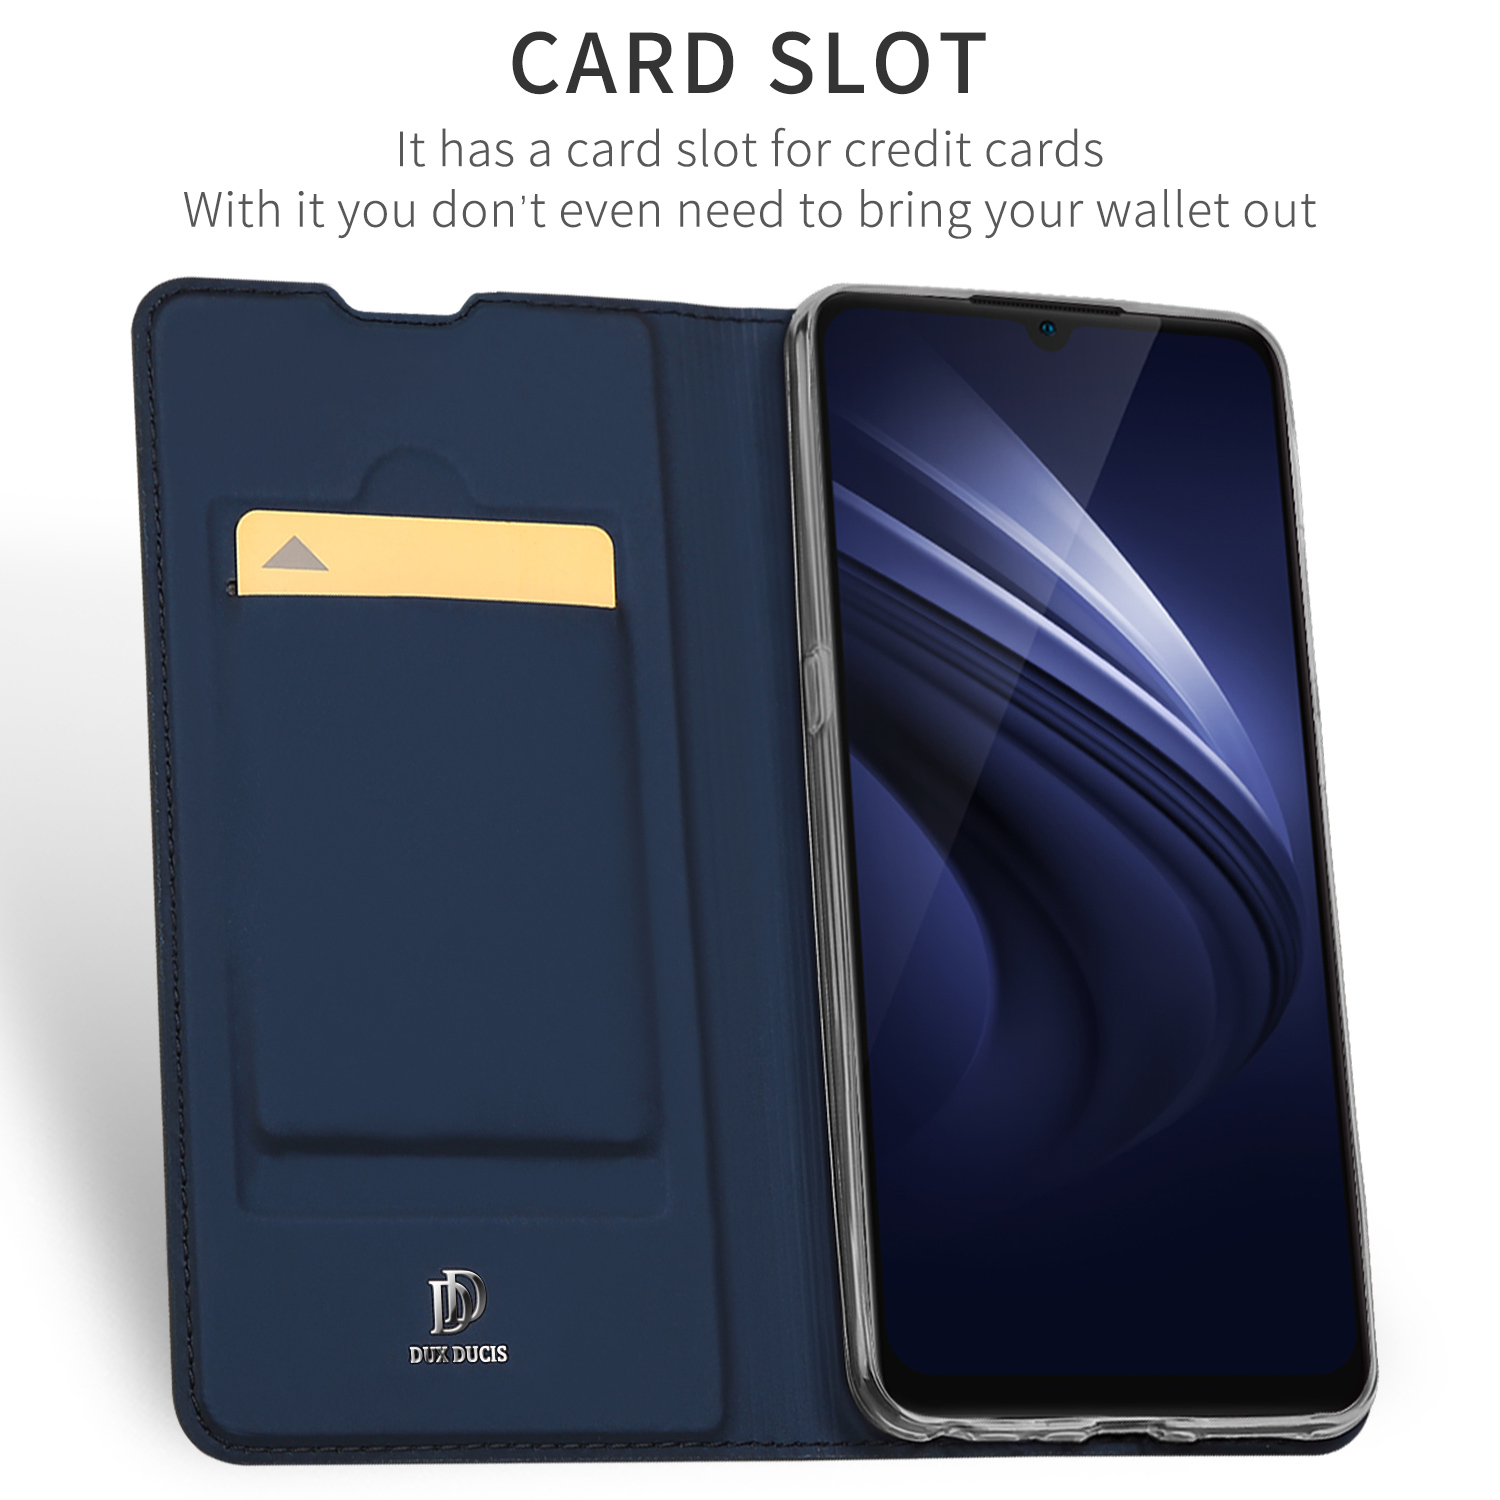 Flip Case For ViVO S1 IQOO NEO PU Leather TPU Soft Bumper Protective Card Slot Holder Wallet Stand Cover Mobile Phone Bag in Flip Cases from Cellphones Telecommunications